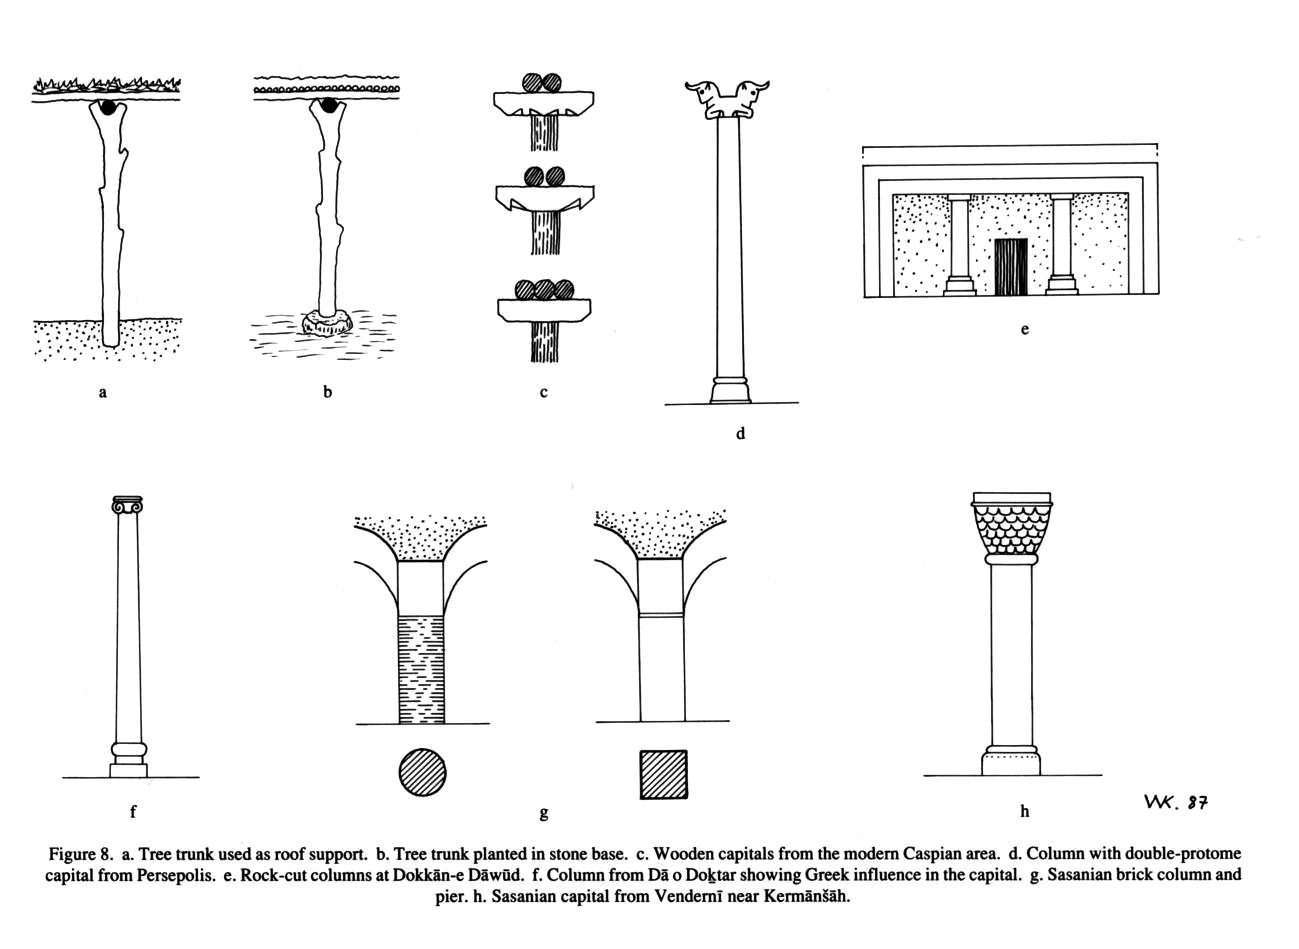 Columns encyclopaedia iranica or turf figure 8a pooptronica